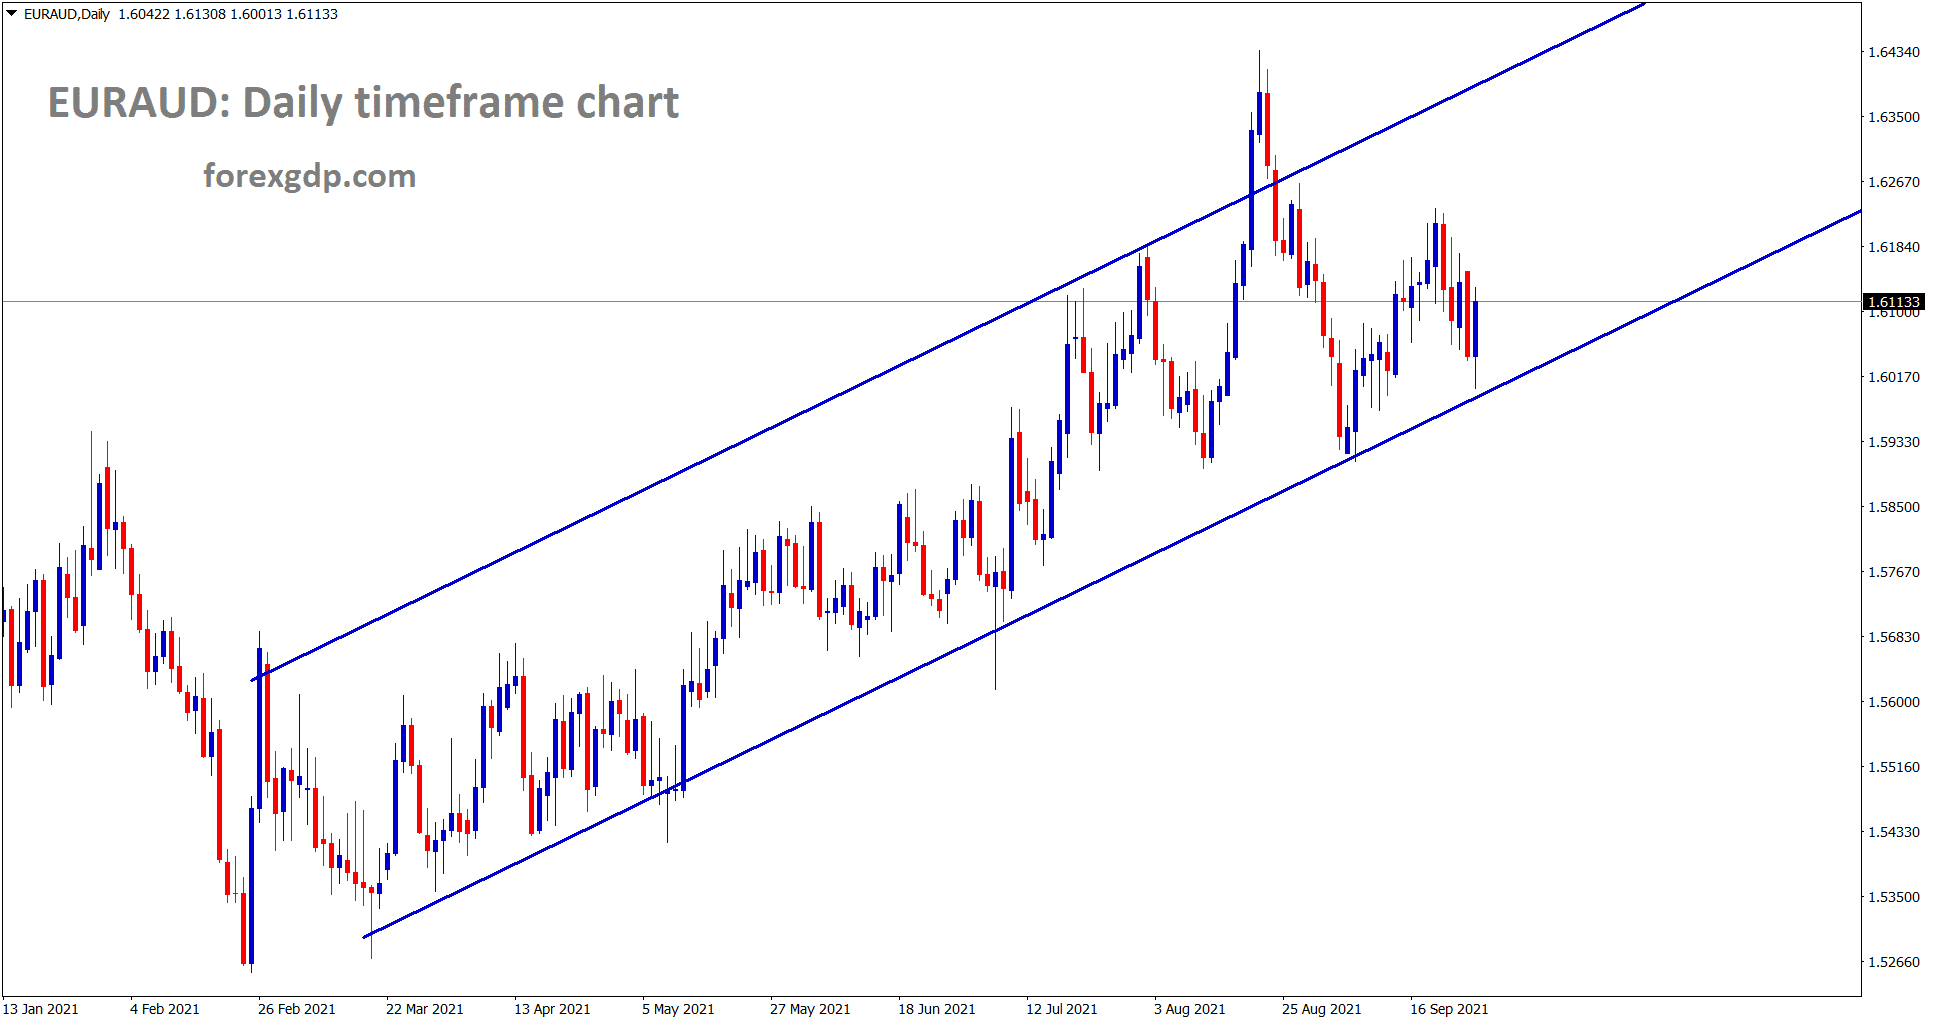 EURAUD is moving in an Uptrend line